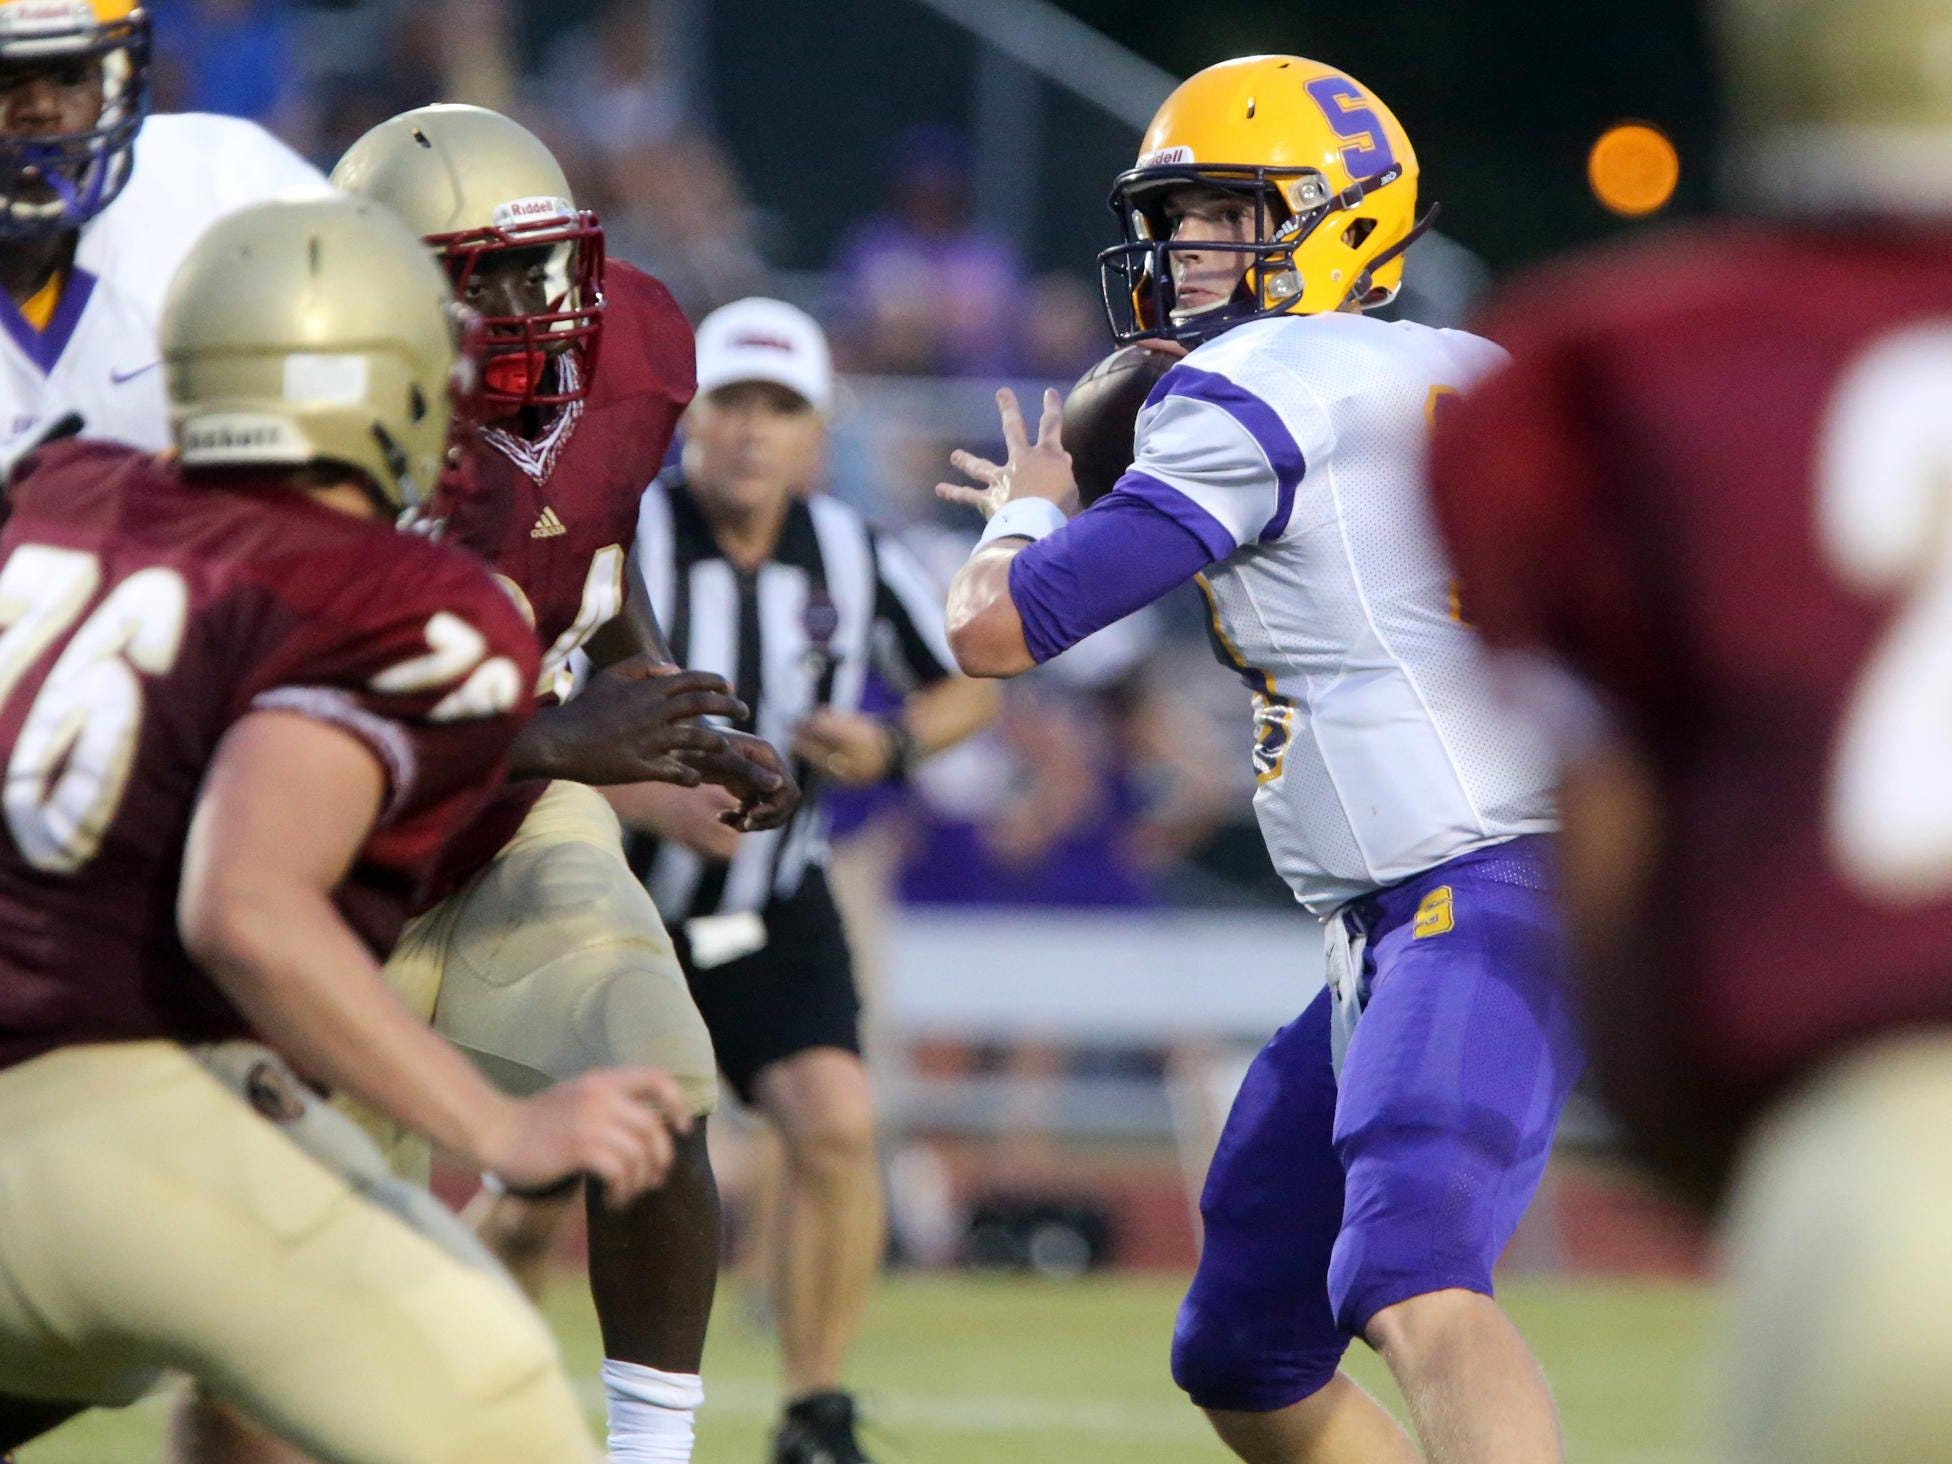 Smyrna's John Turner feels the pressure from Riverdale as they move in while Turner looks for a player to throw to during the second Jamboree game Friday, Aug. 14, 2015, at Stewarts Creek.